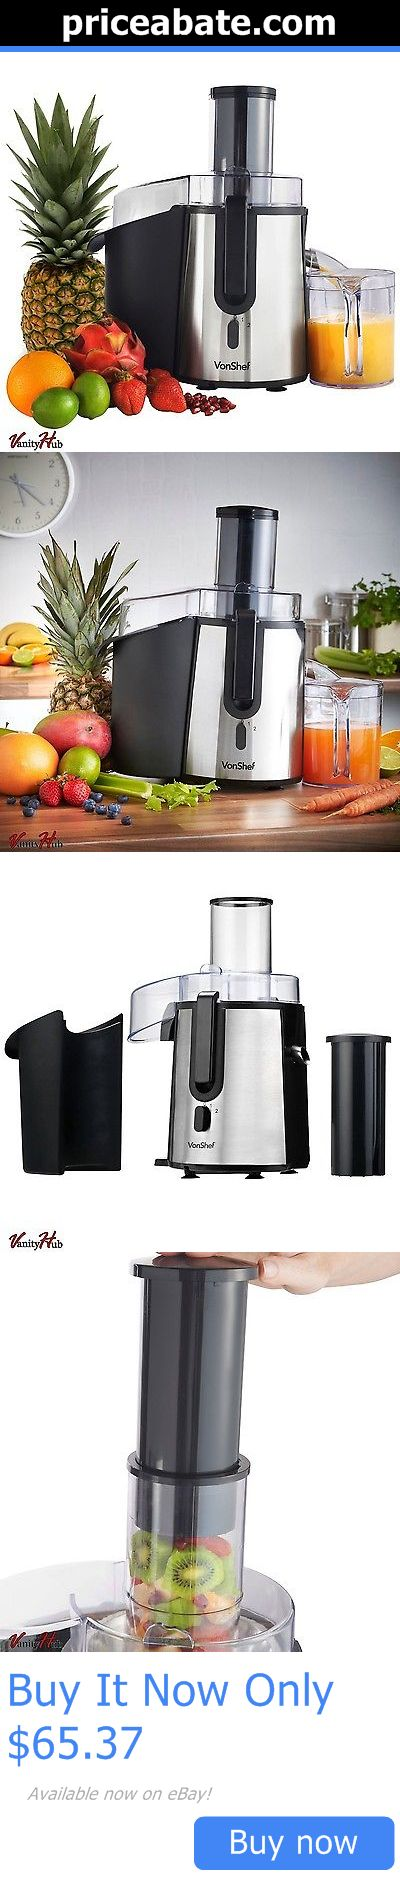 Small Kitchen Appliances: Electric Fruit Juicer Vegetable Juice Citrus Extractor Machine Maker Blender New BUY IT NOW ONLY: $65.37 #priceabateSmallKitchenAppliances OR #priceabate